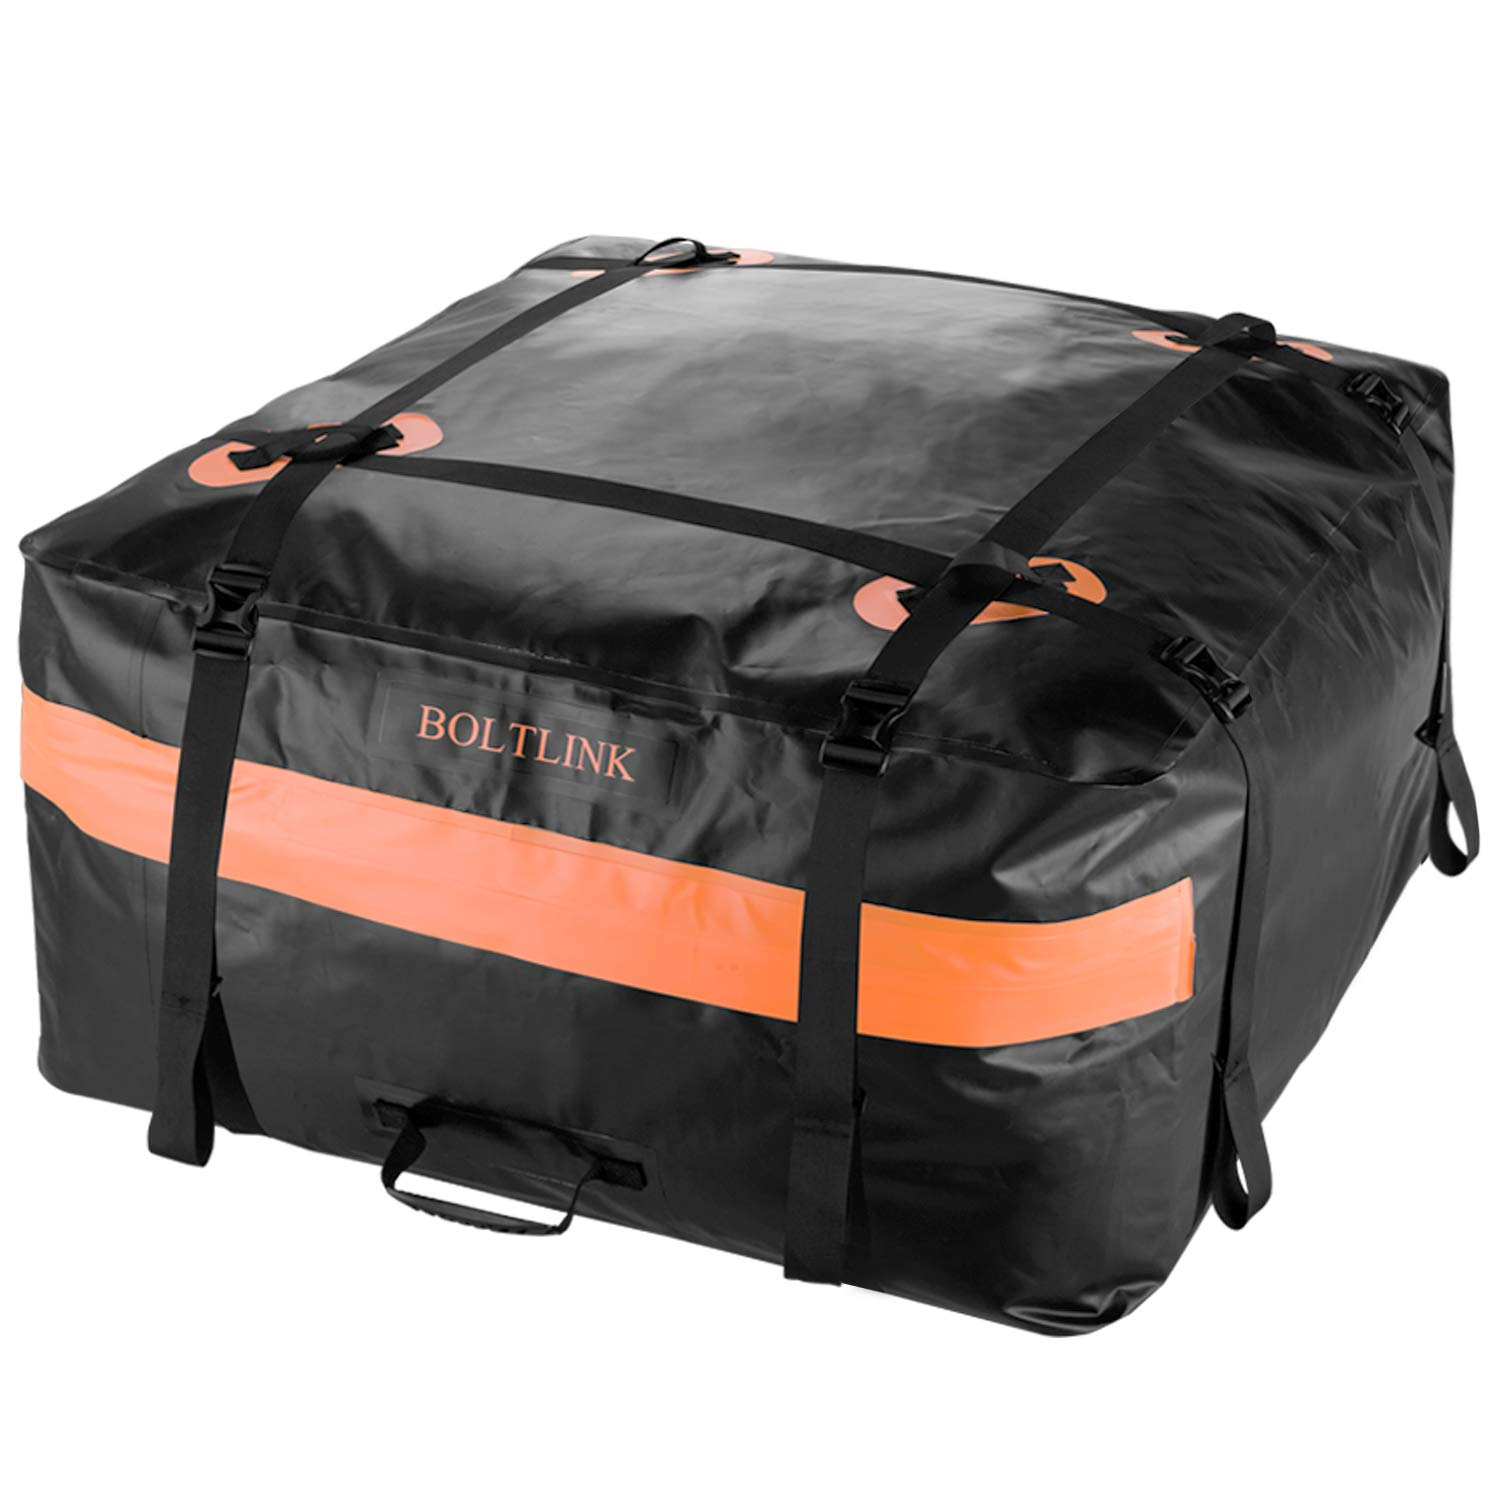 BOLTLINK Car Roof Top Cargo Carrier Bag, Made with Waterproof Material, Easy Install for Most Car,Jeep, SUV with Racks by BOLTLINK